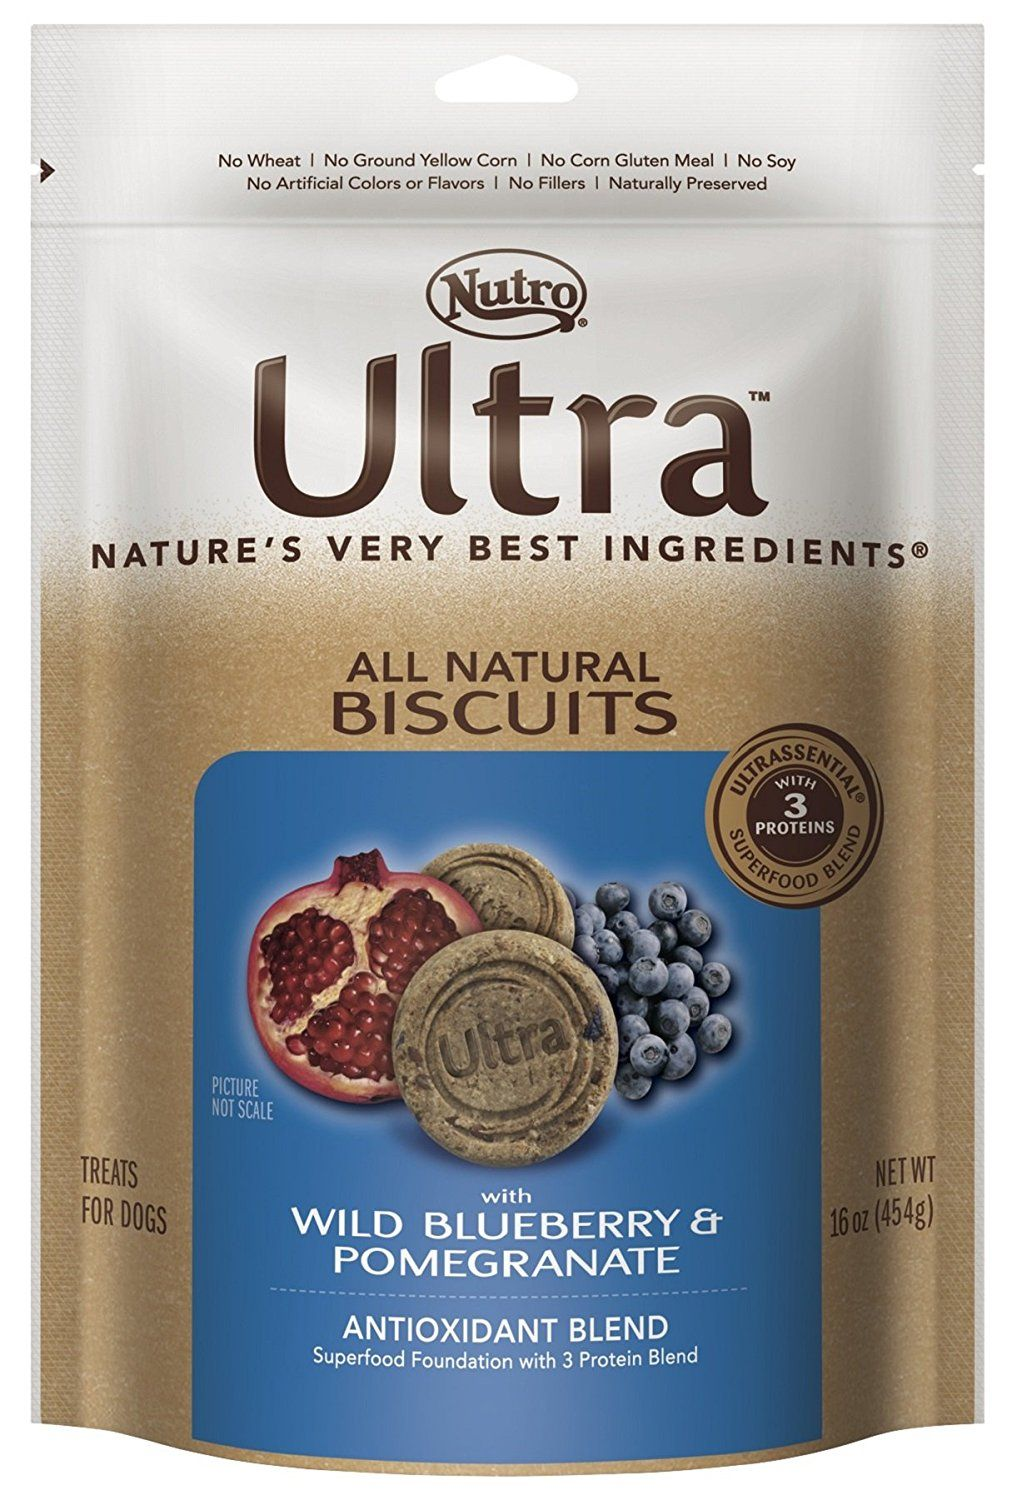 Nutro ultra dog biscuits insiders special review you